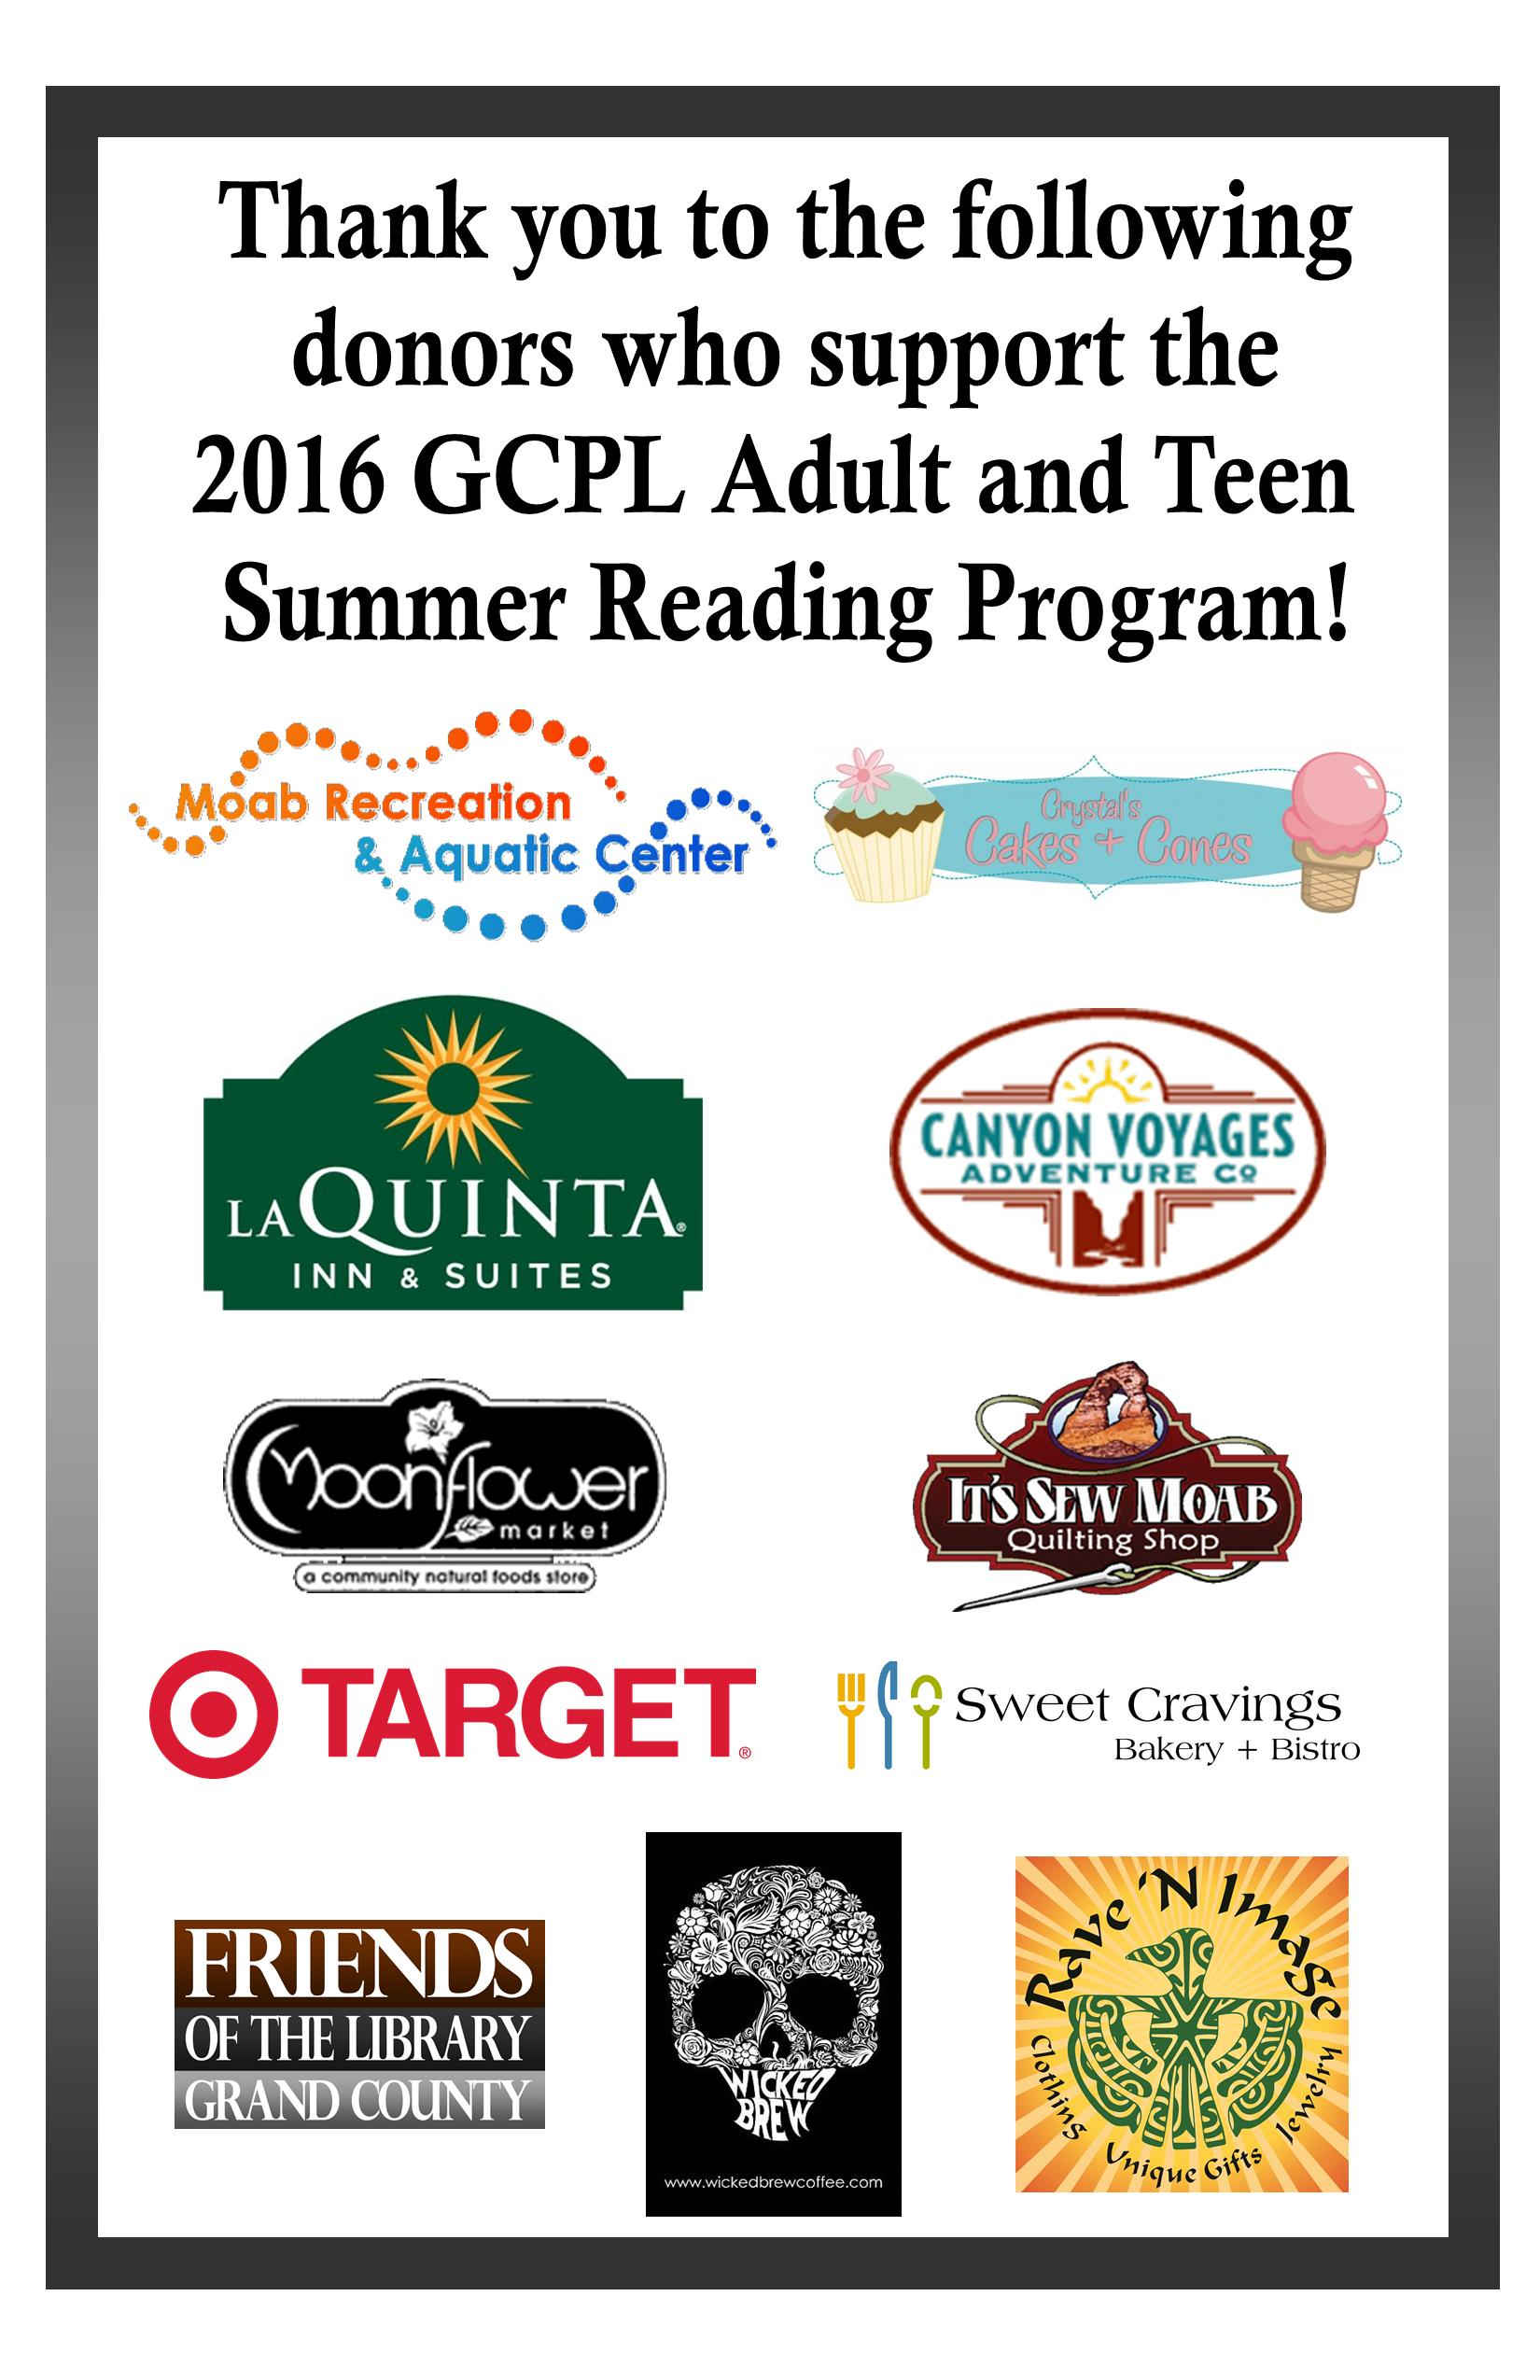 2016 Adult and Teen SRP sponsors